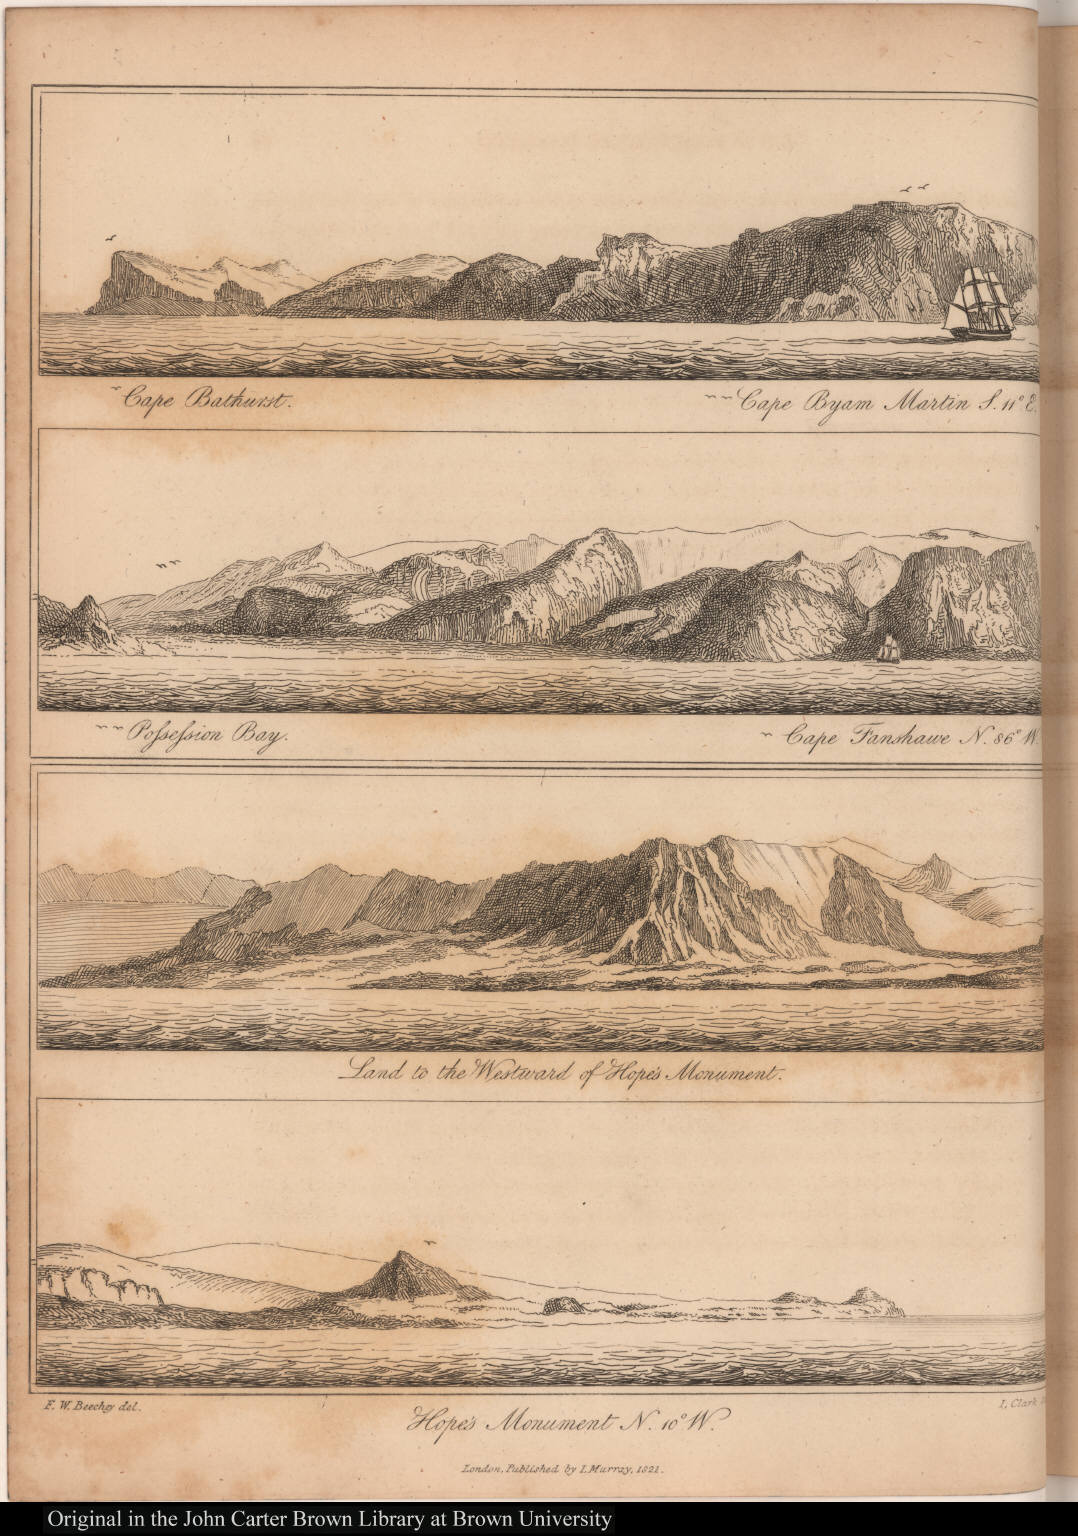 [Views of Capes Bathurst, Byam Martin, and Fanshawe, Possession Bay, Hope's Monument and land west of Hope's Monument]